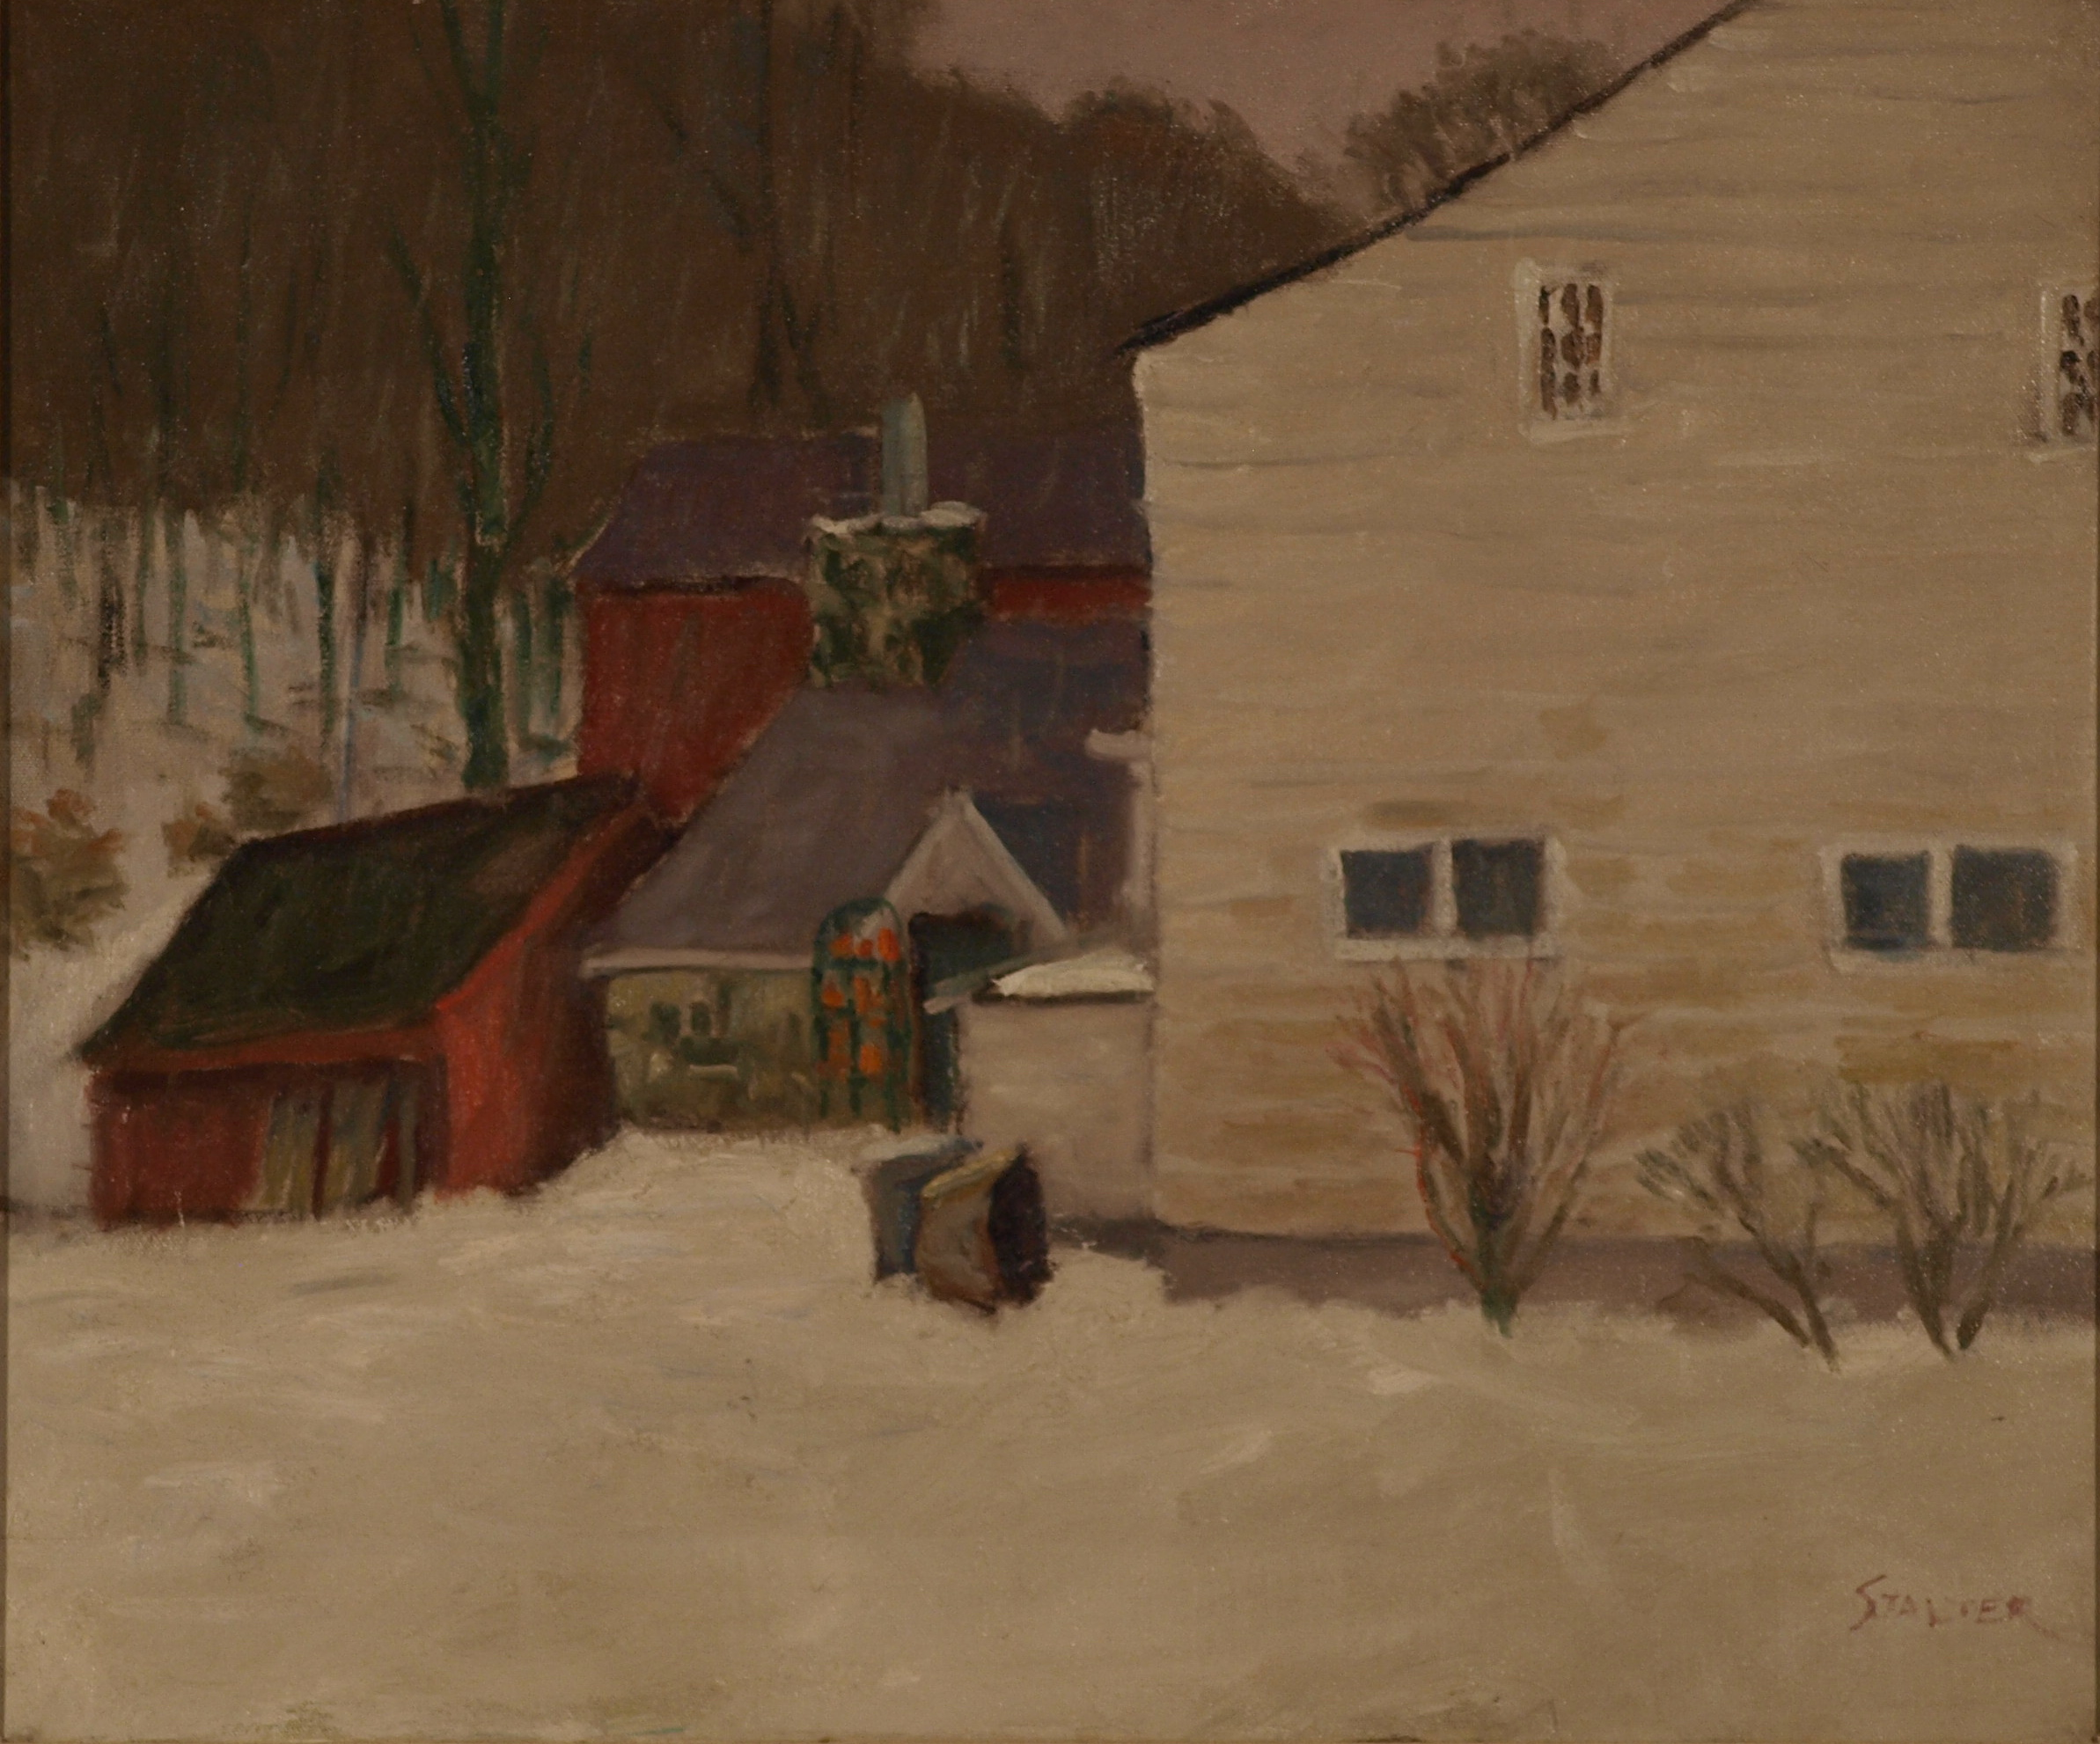 Pilieros - Gray Winter Day, Oil on Canvas, 20 x 24 Inches, by Richard Stalter, $650